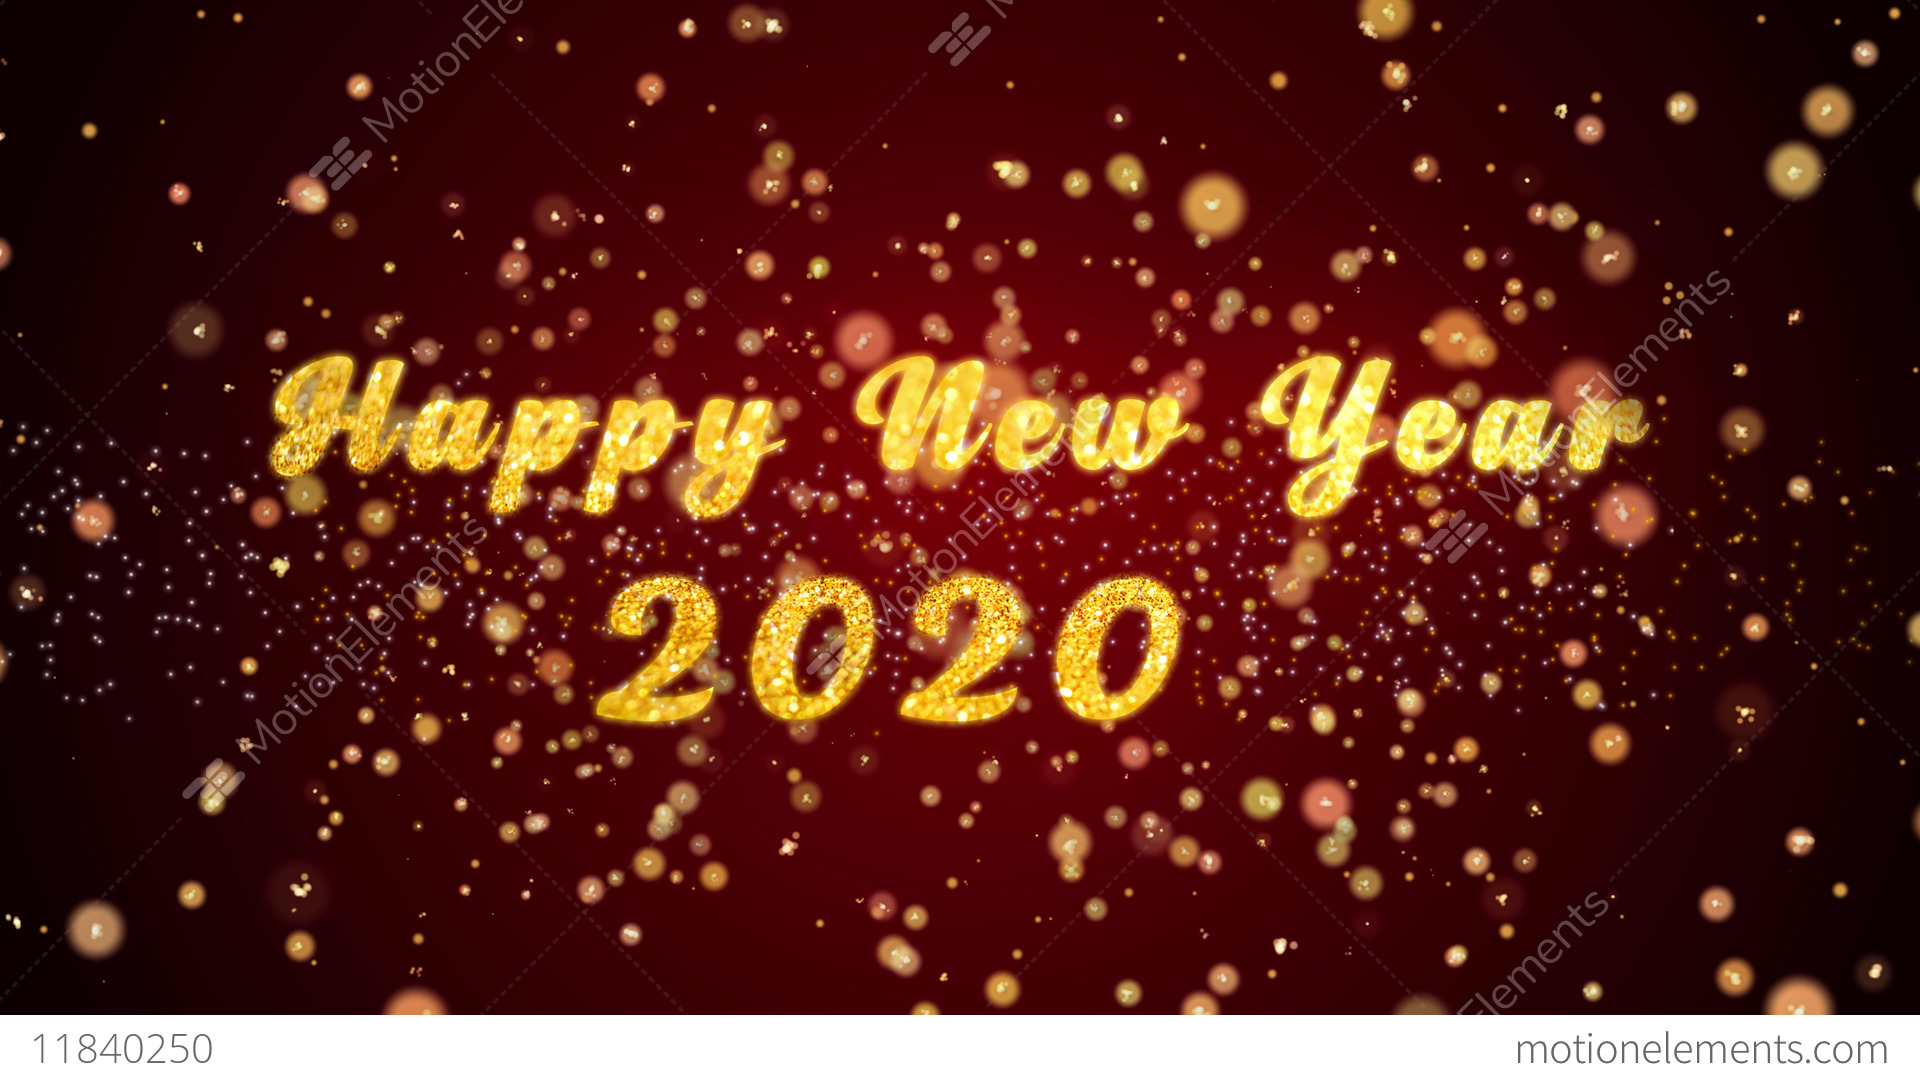 Happy new year 2020 hd pic.com